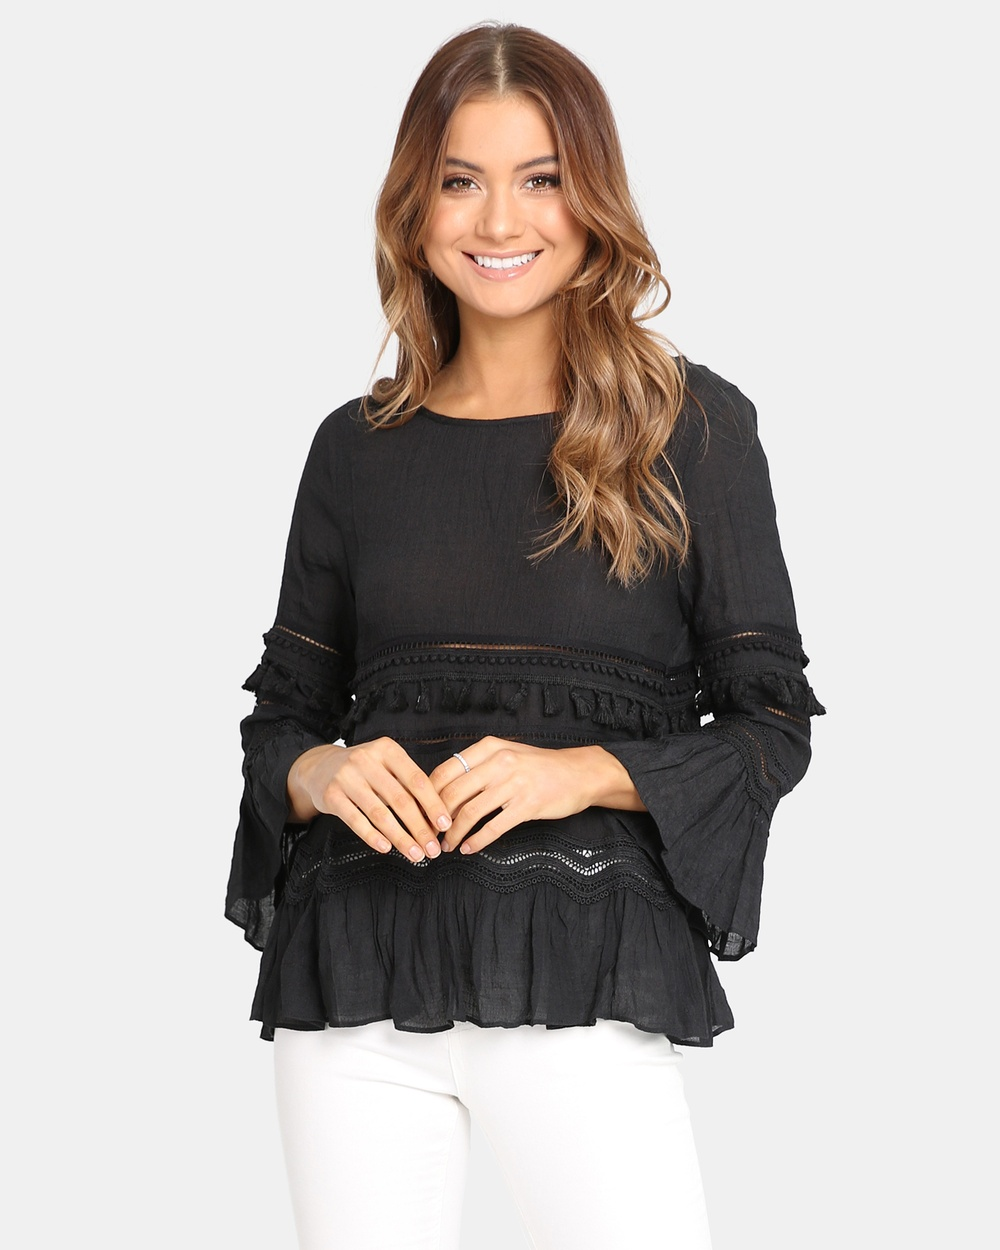 Madison Square Chantelle Top Tops Black Chantelle Top